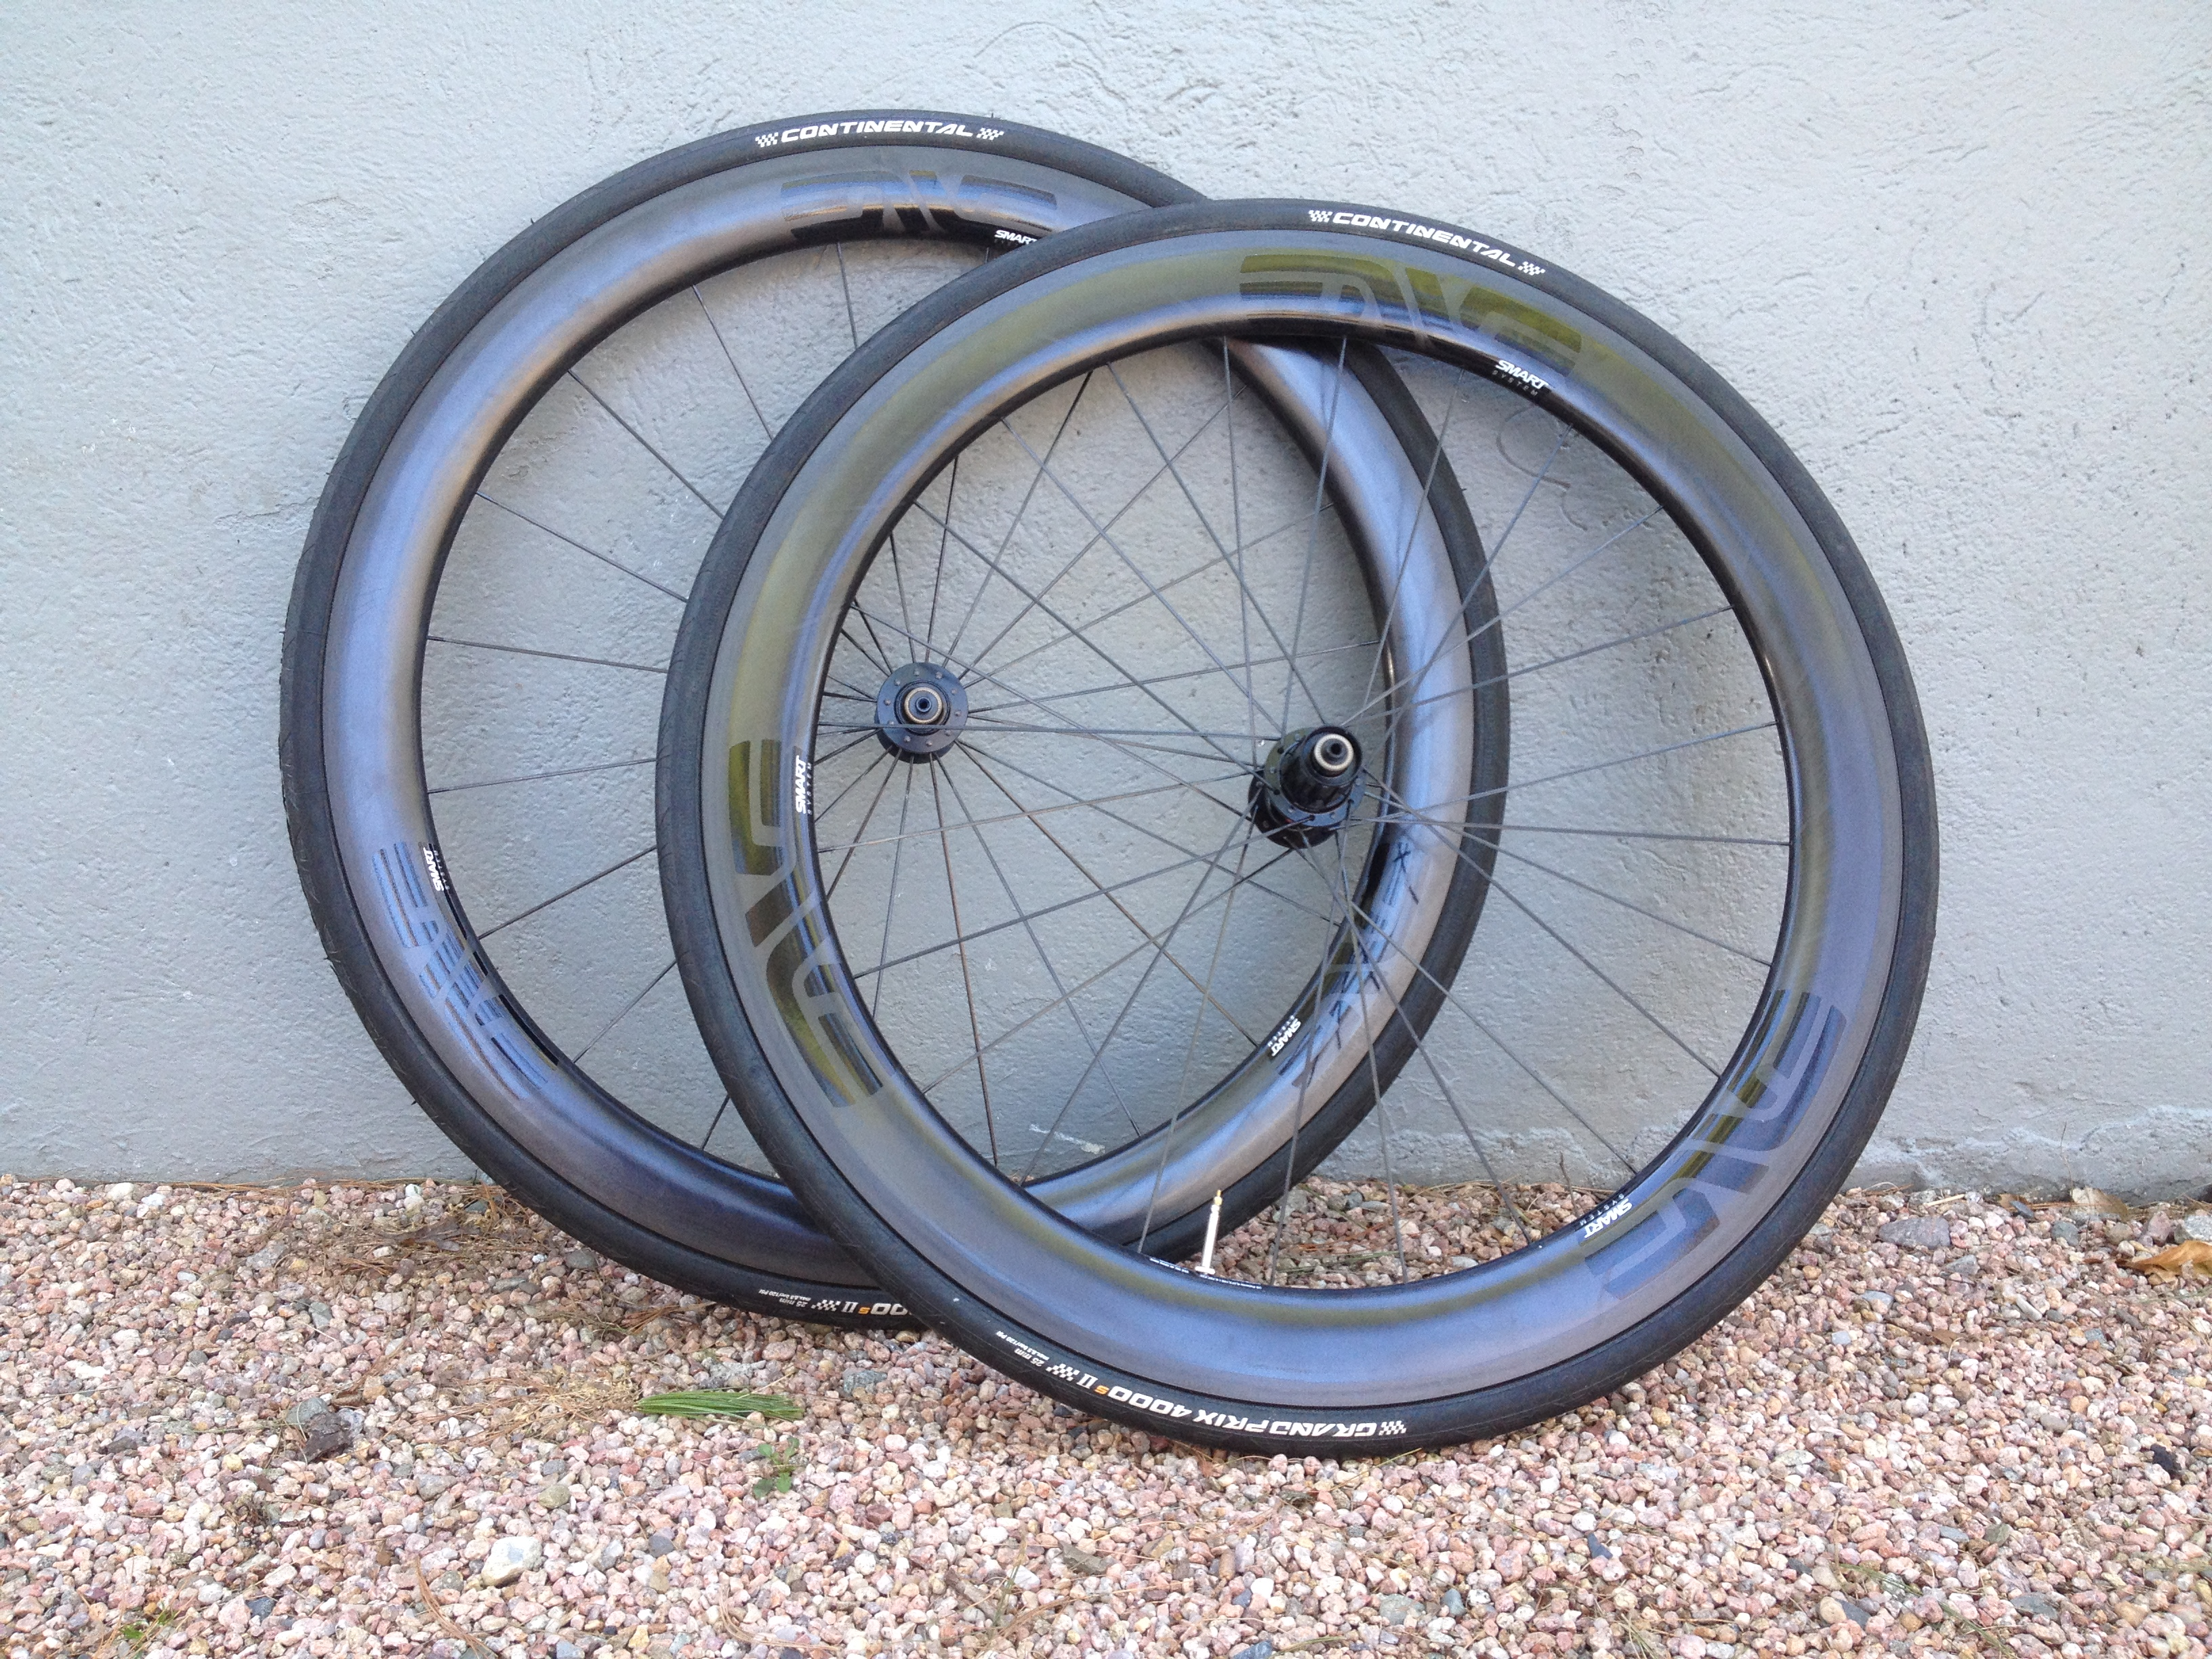 ENVE SES 4.5 Wheelset aero bike wheels